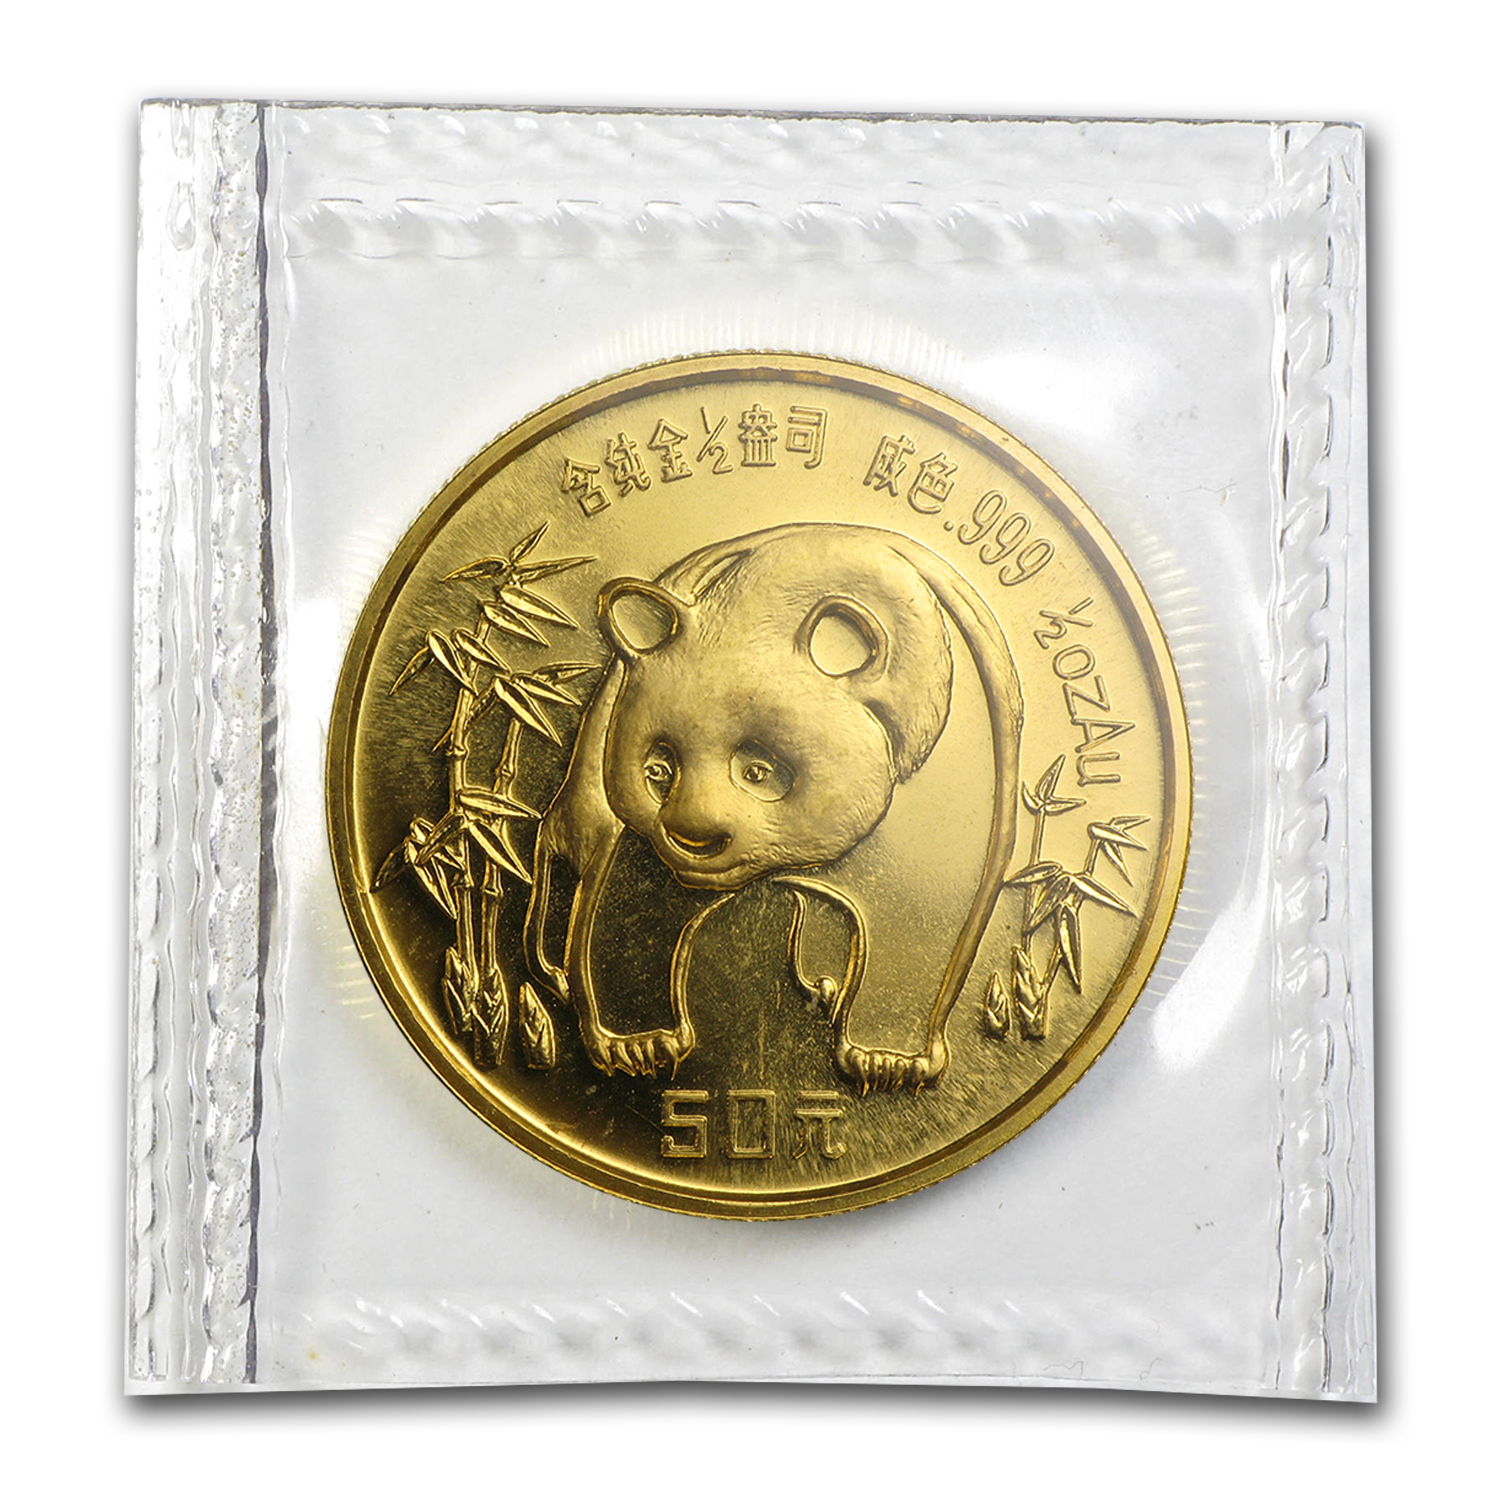 1986 (1/2 oz) Gold Chinese Pandas - (Sealed)